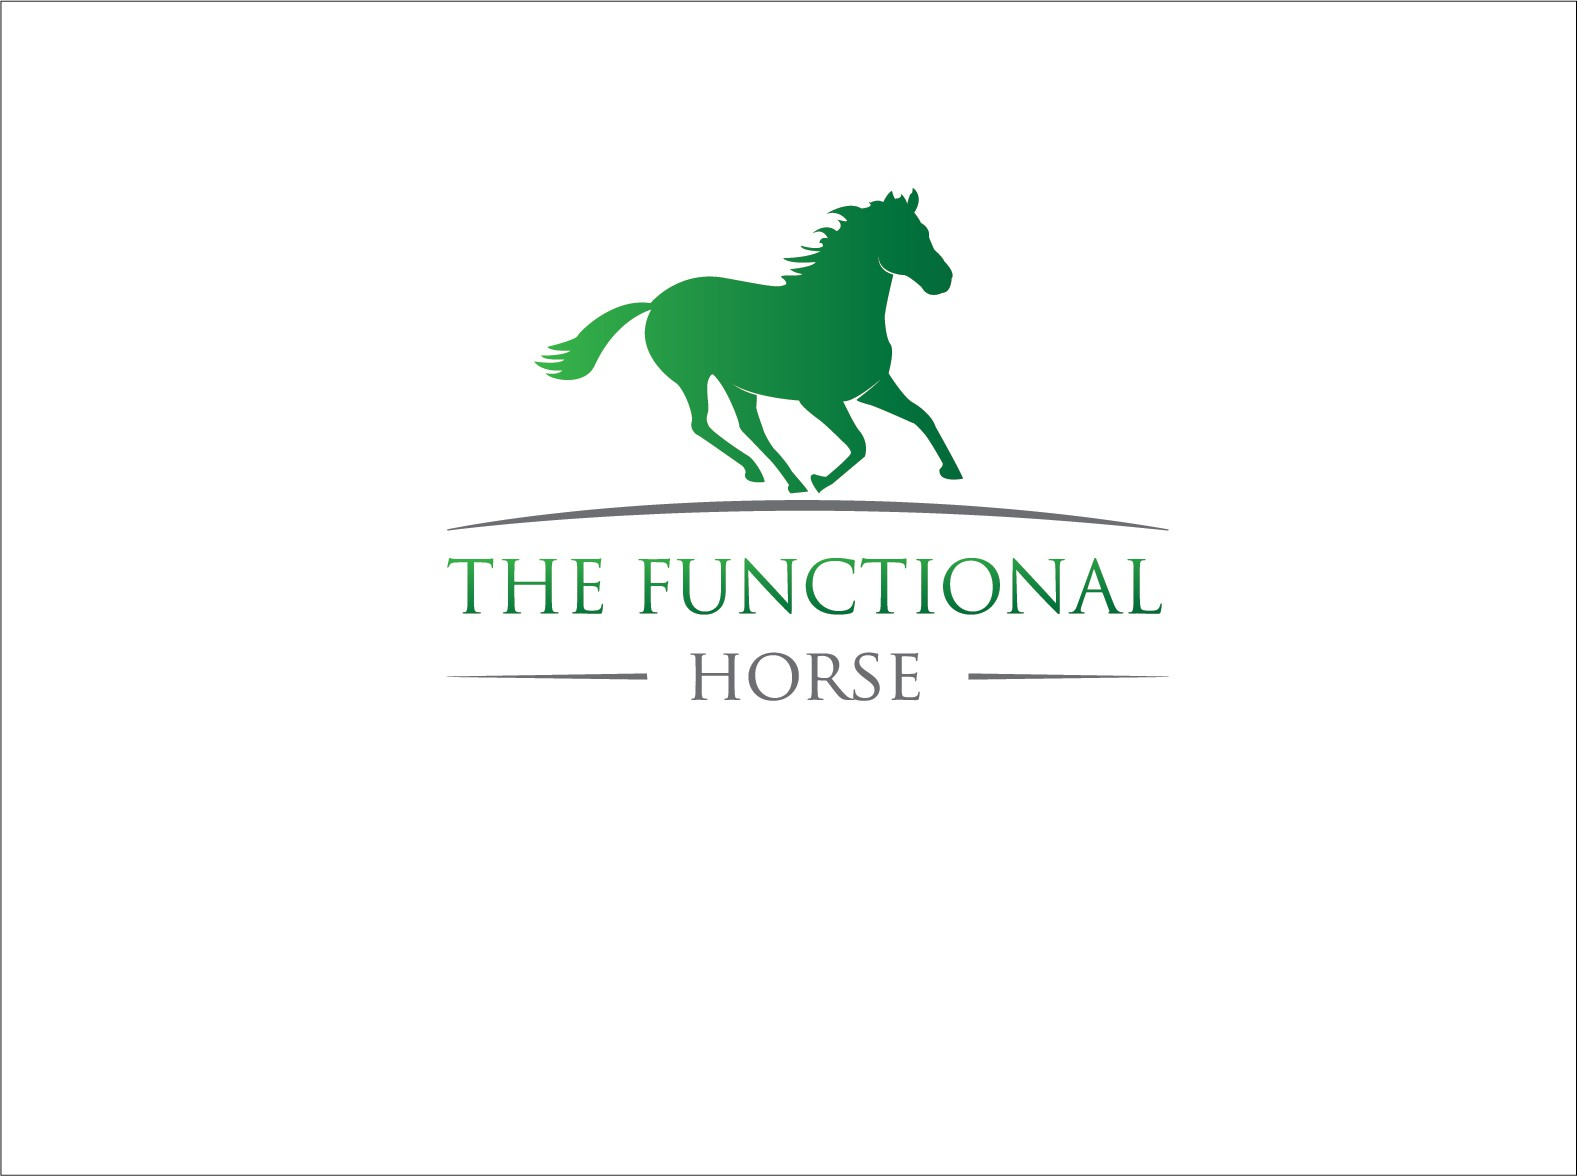 Create the next logo for The Functional Horse